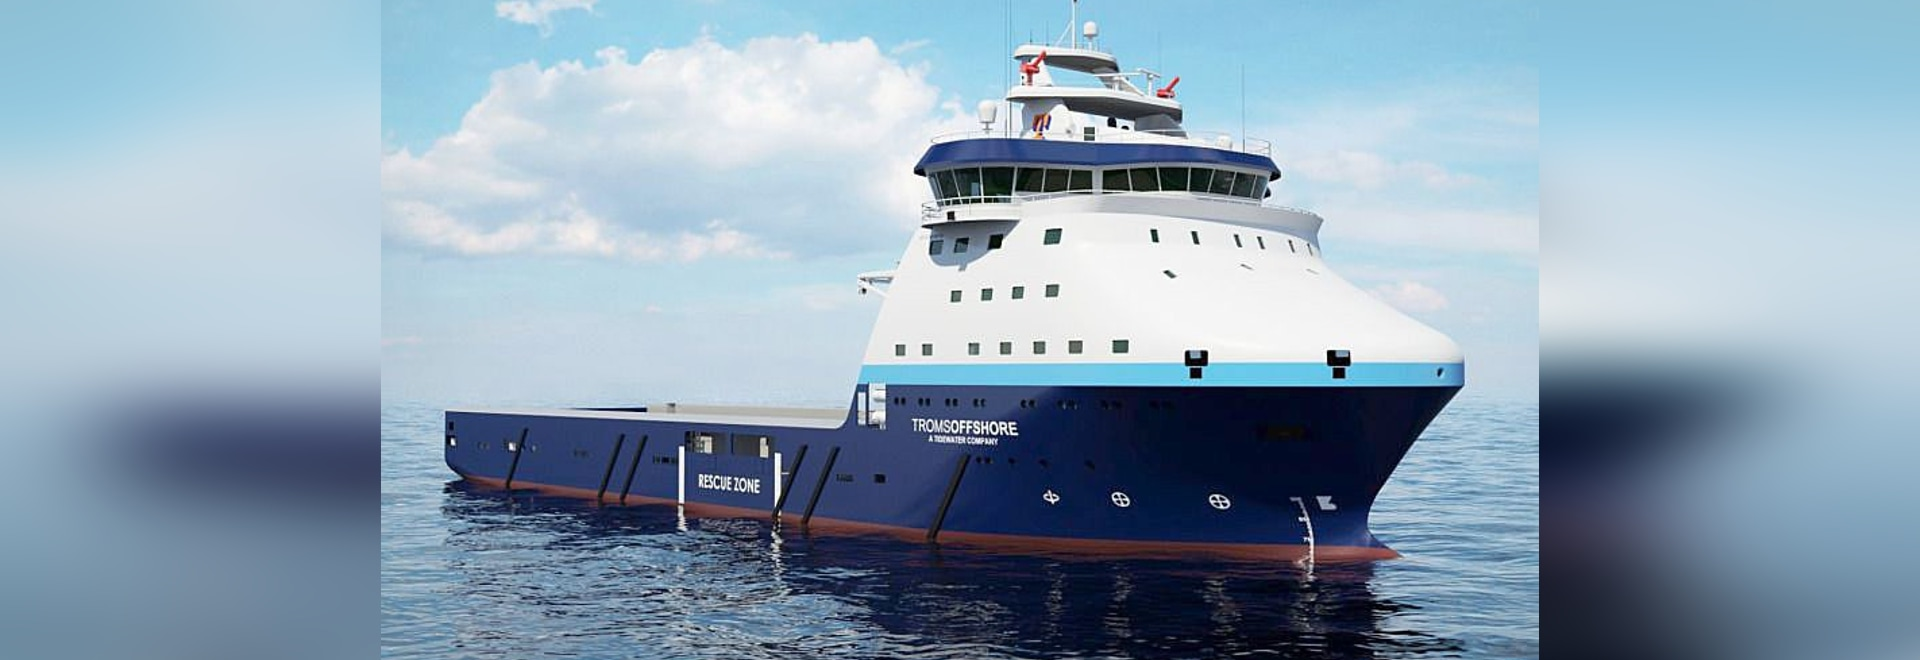 PALFINGER NED-DECK and PALFINGER BOATS sold combined package with davit and fast rescue boat to Tersan Shipyard